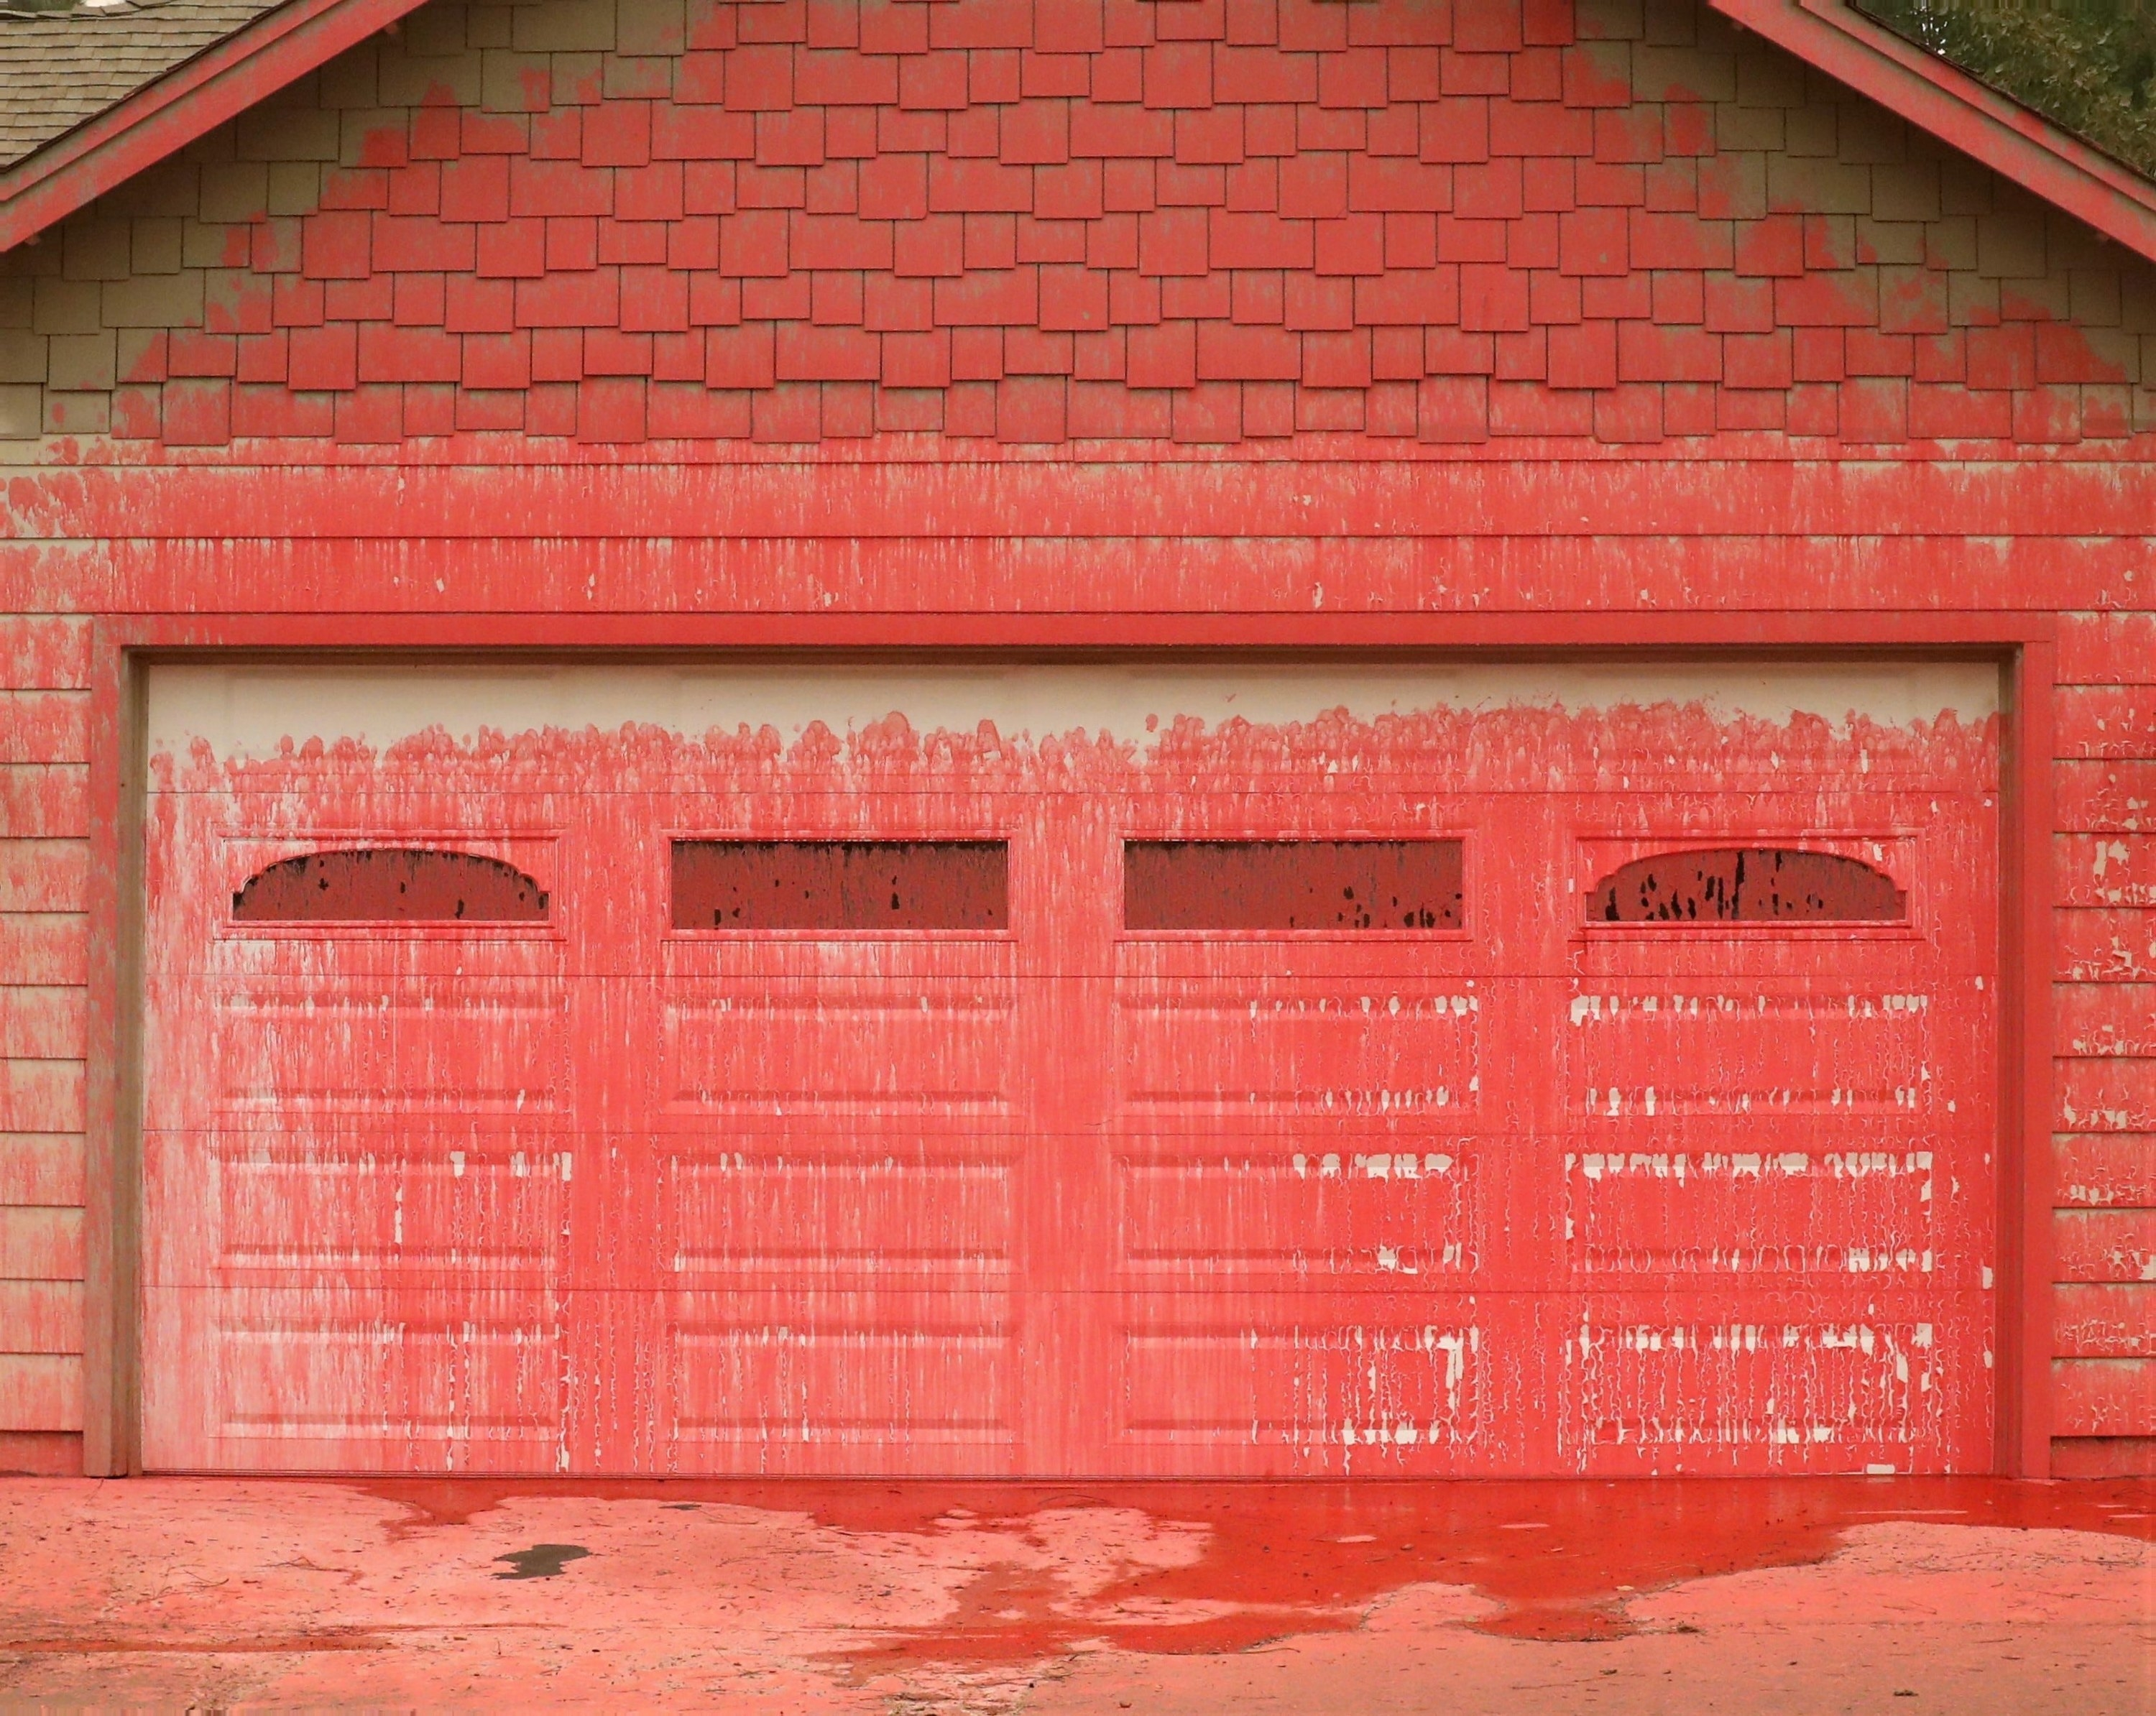 A fire retardant paste covers a garage door and the surrounding walls